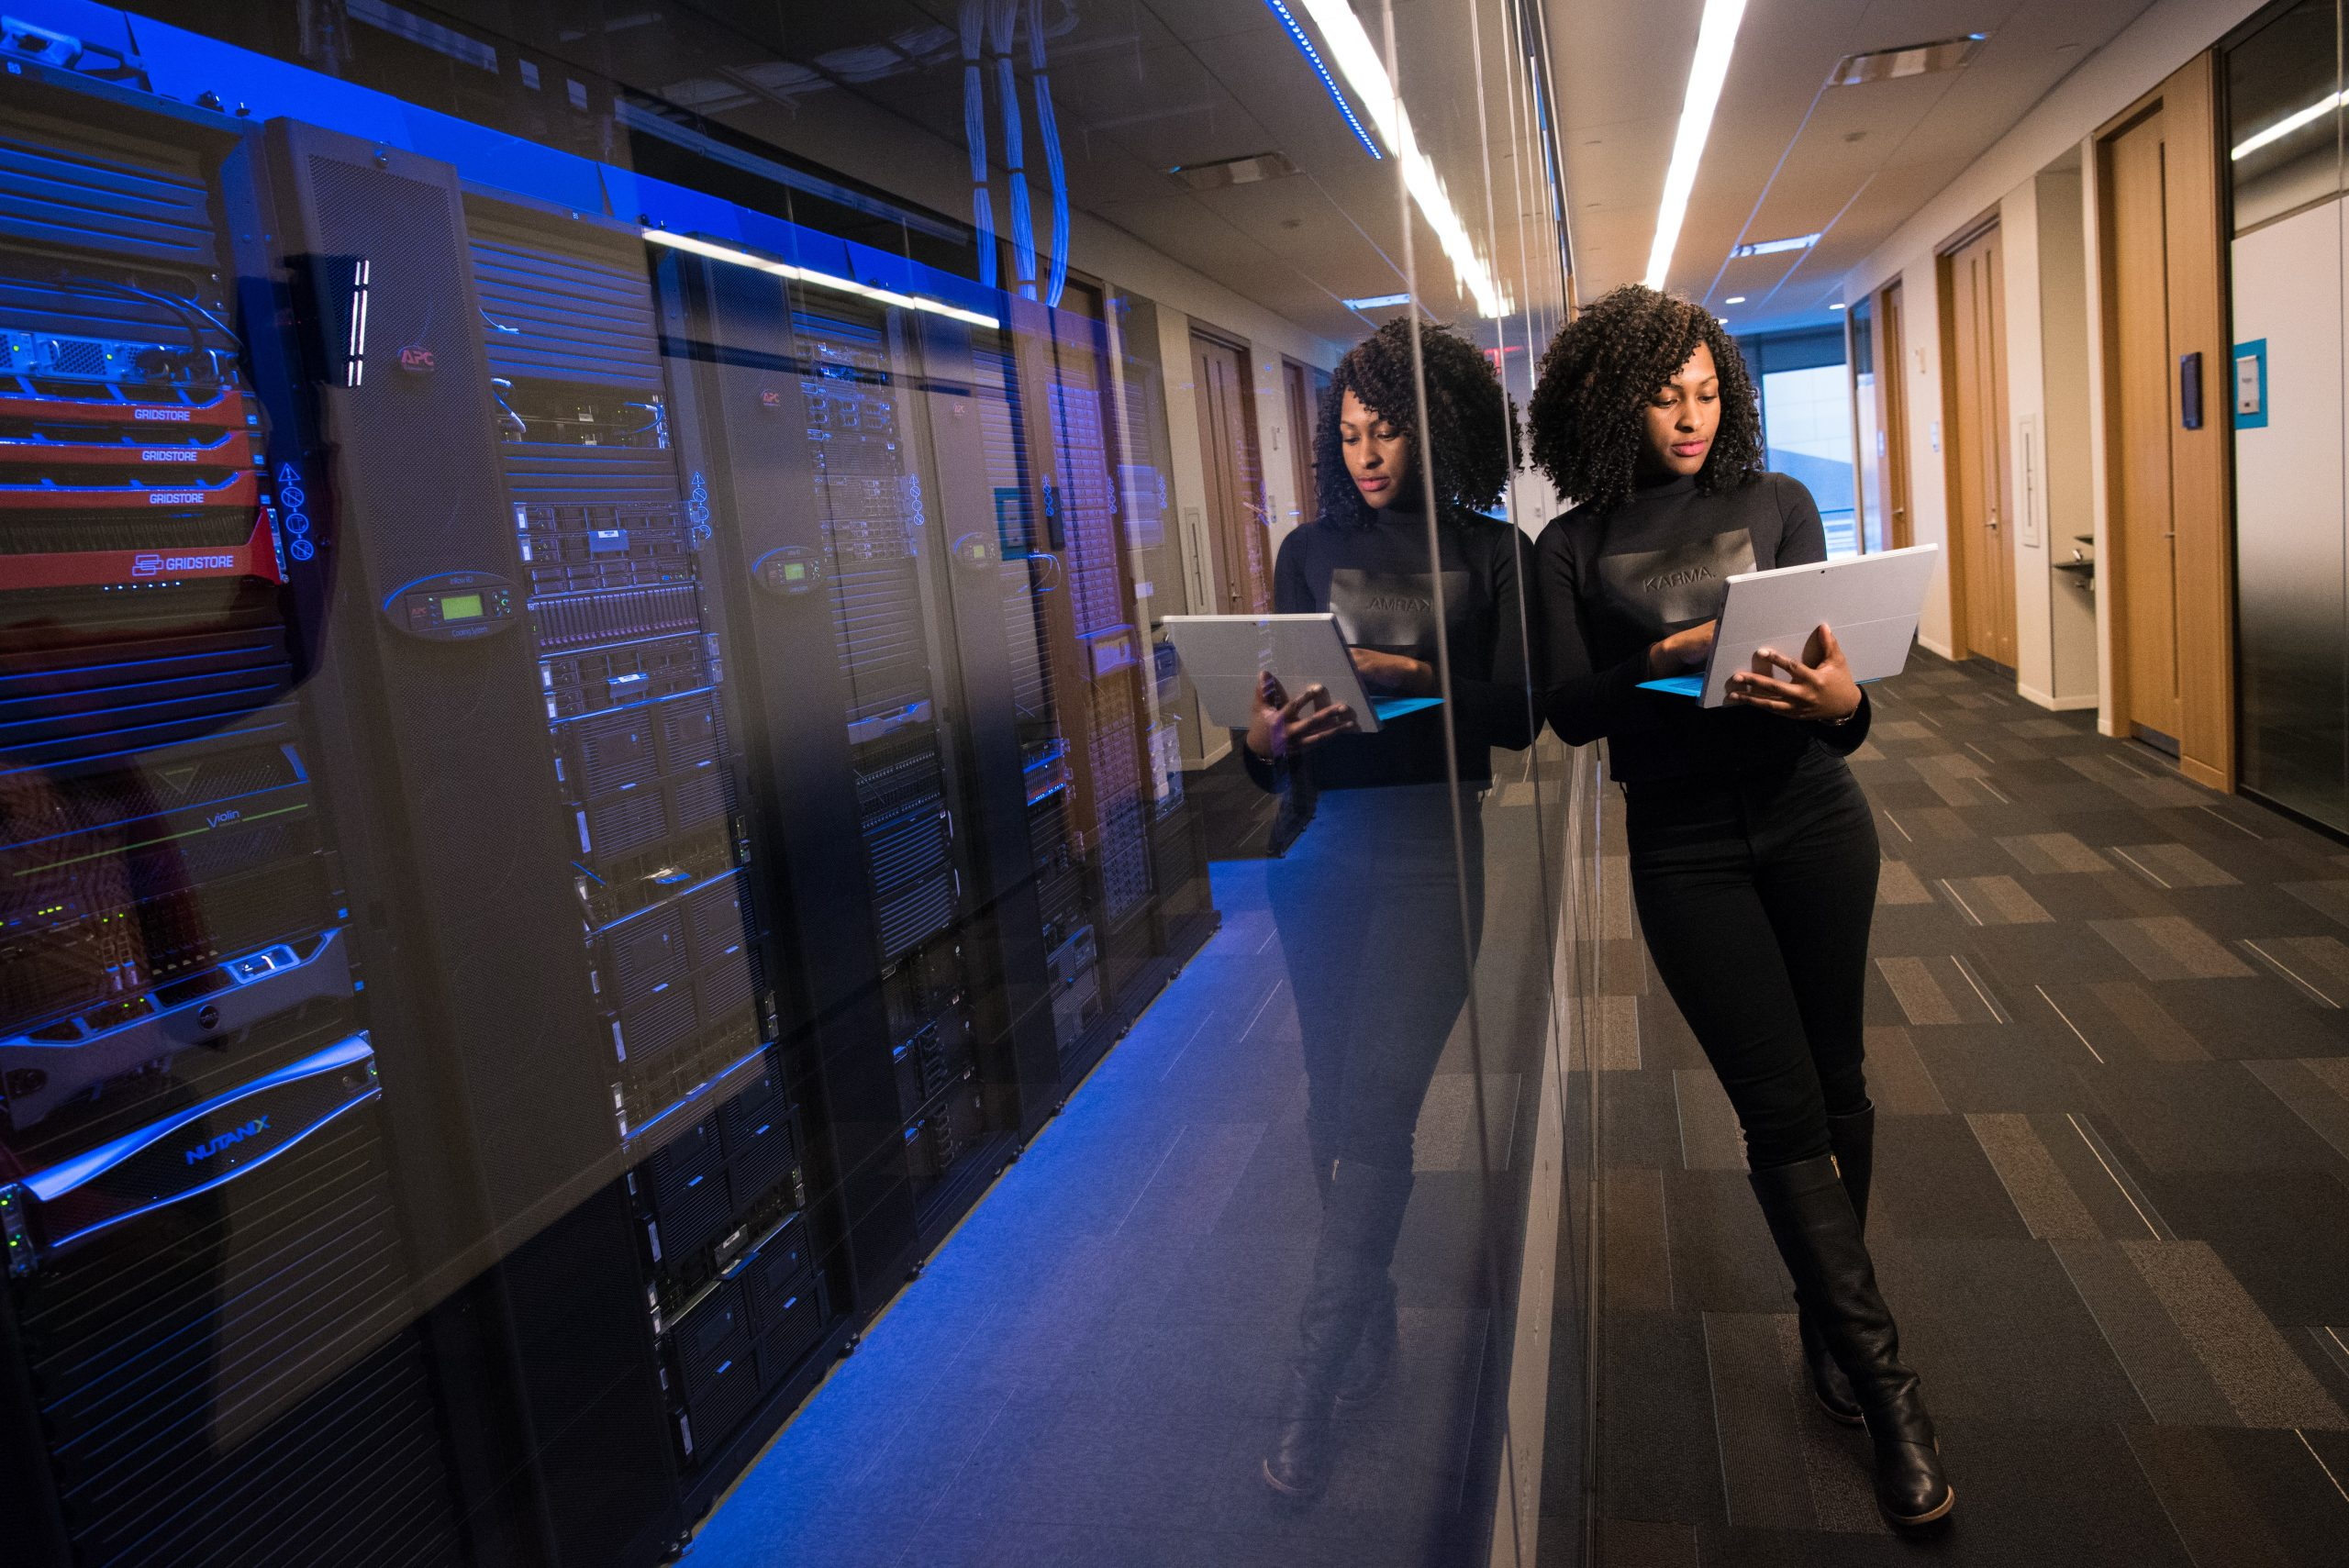 2021 Will Be More Digital for Businesses